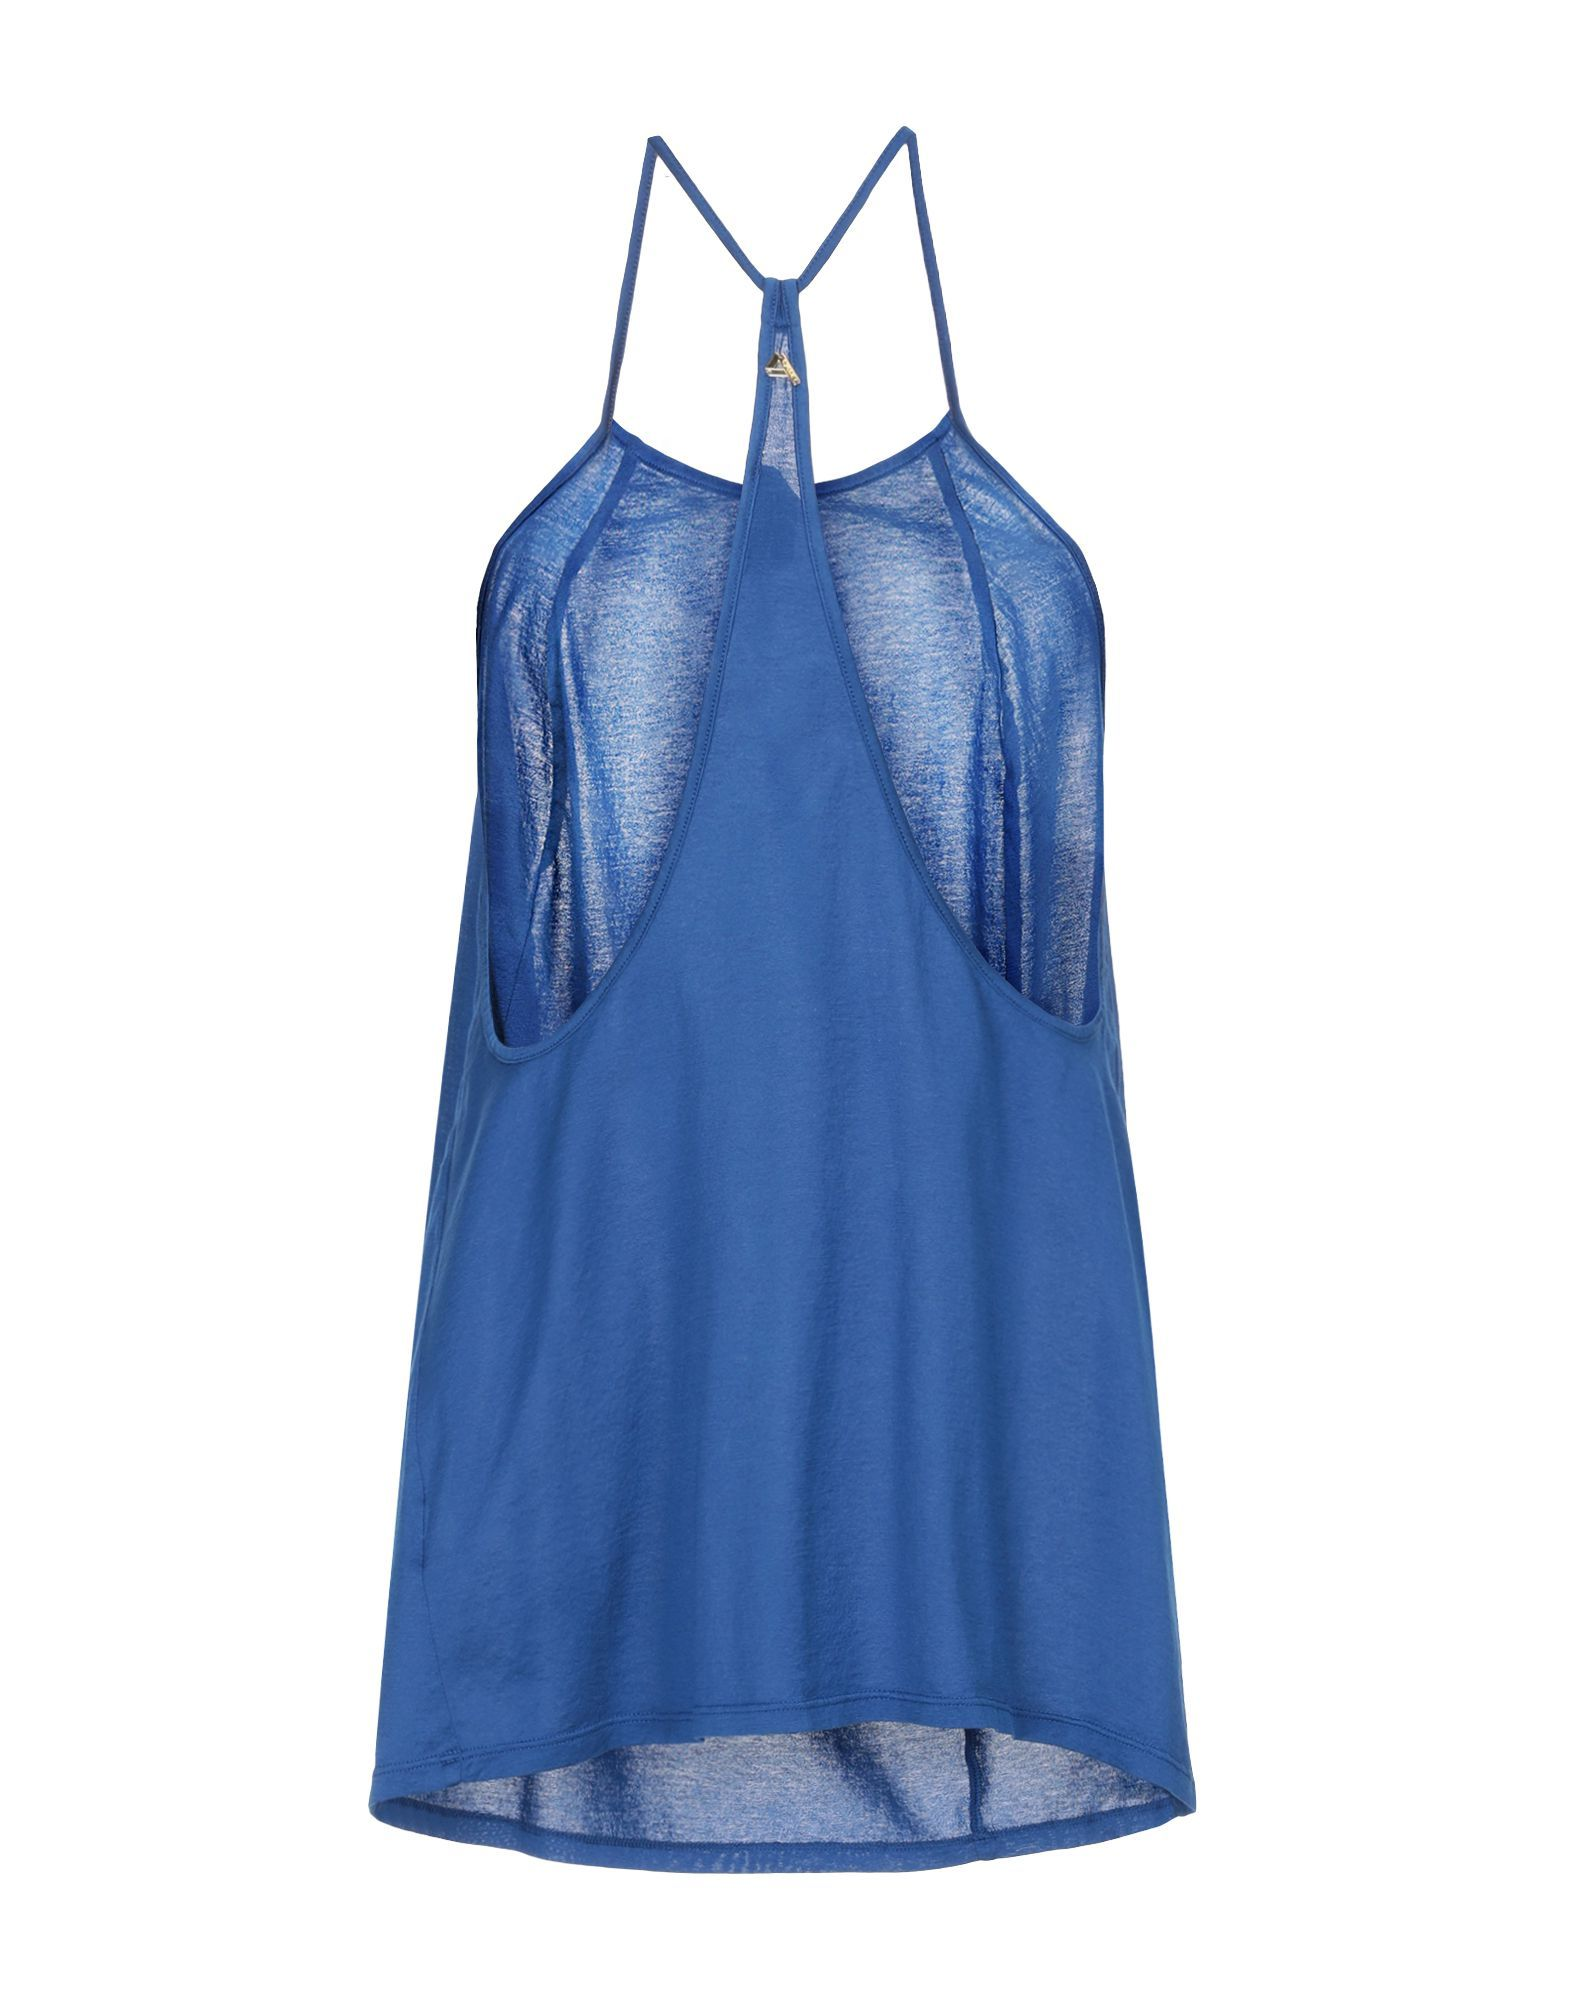 Cycle Woman Tops Blue Cotton